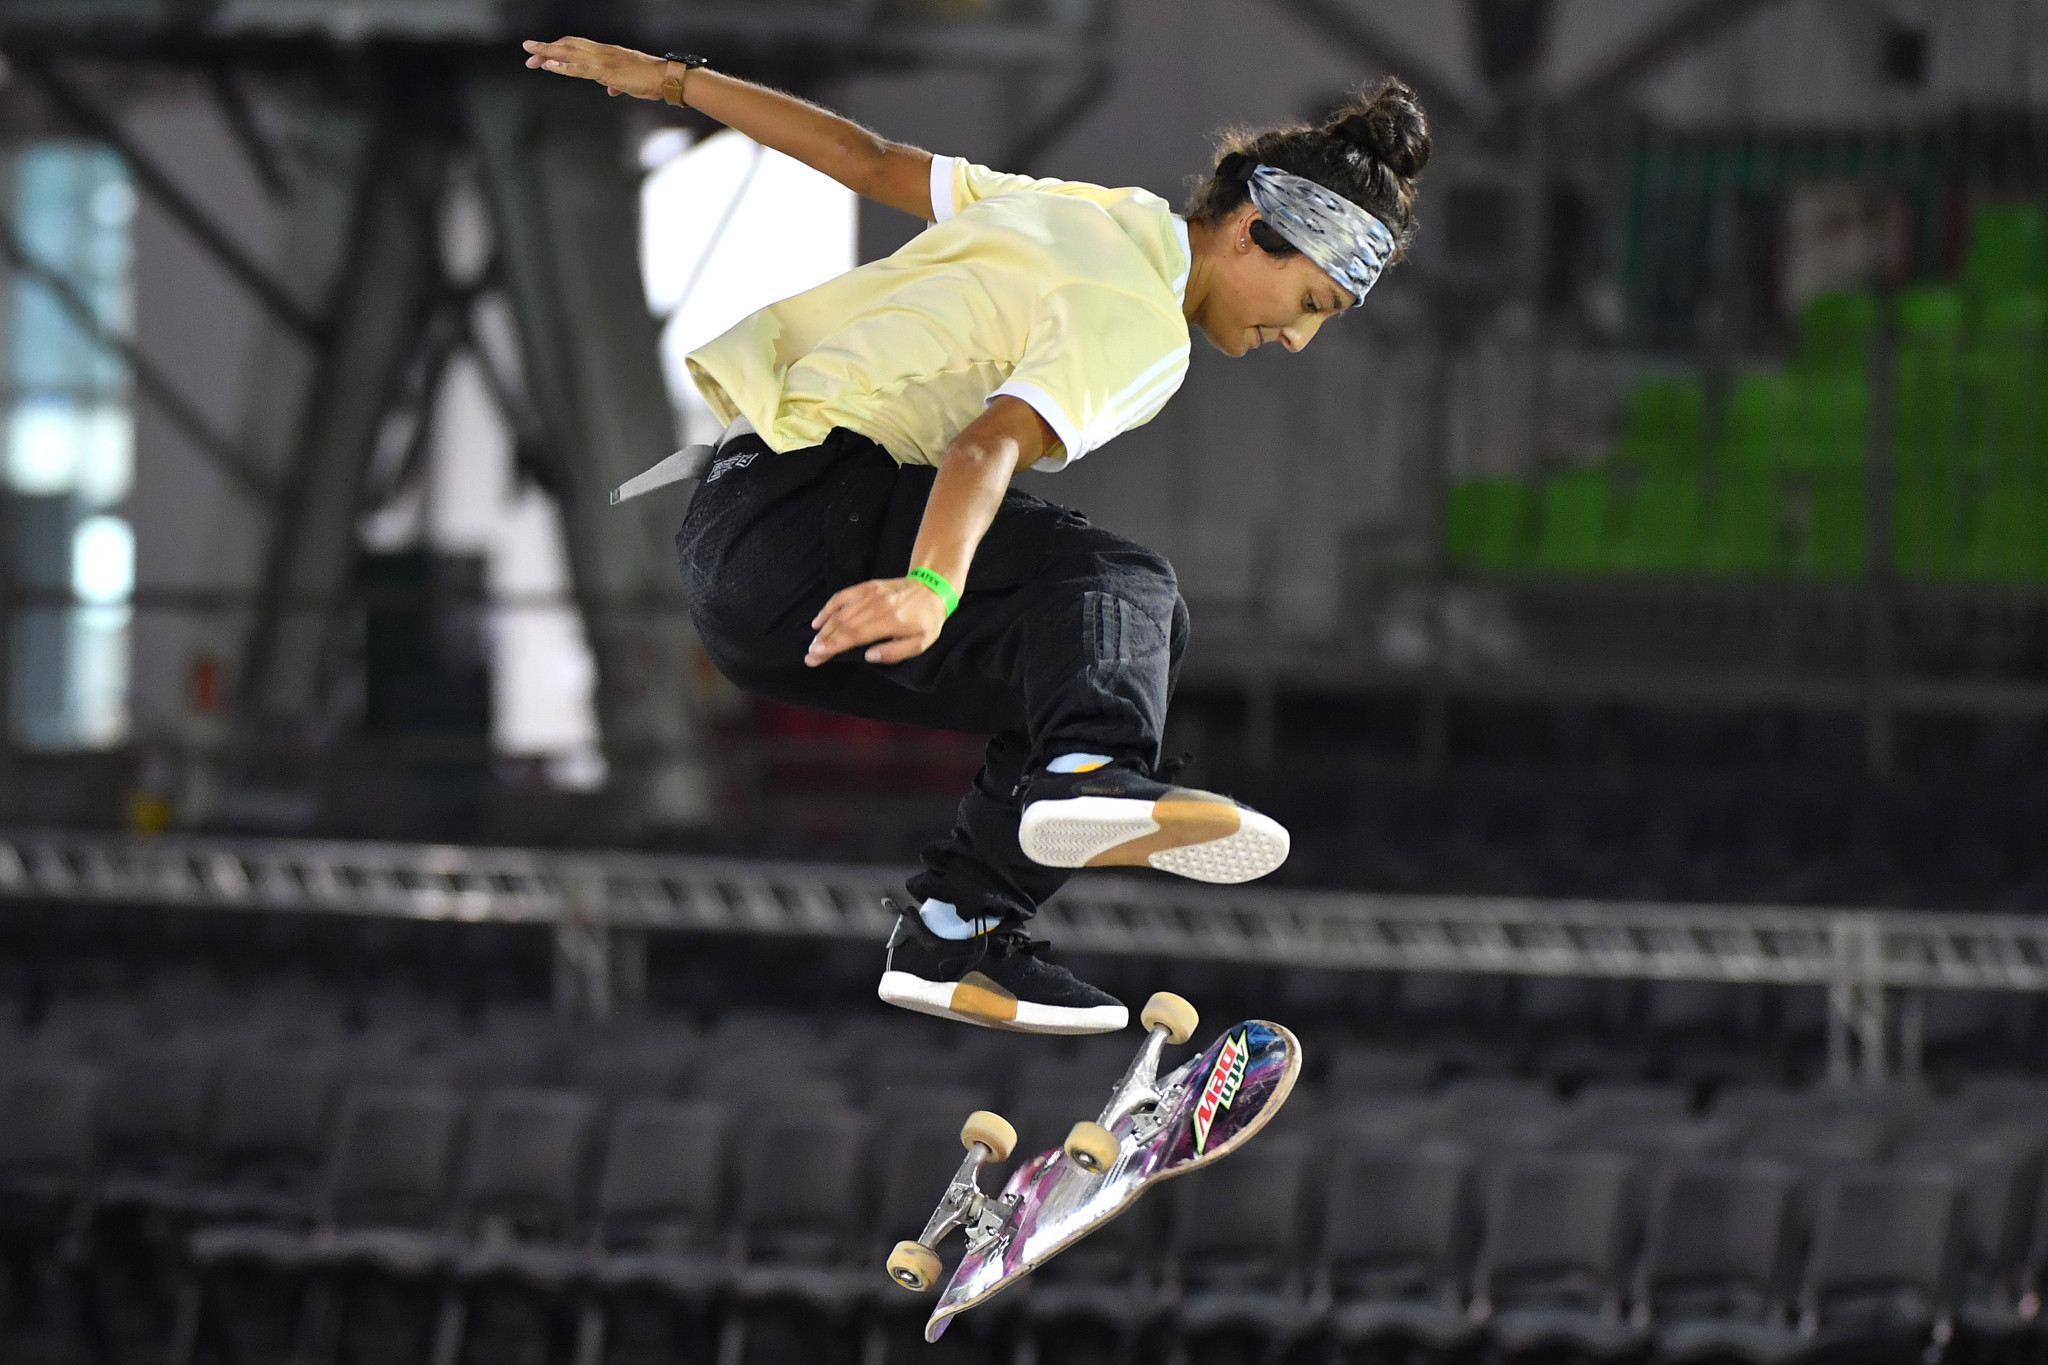 Skateboarding is set to make its Olympic debut at Tokyo 2020 ©Getty Images